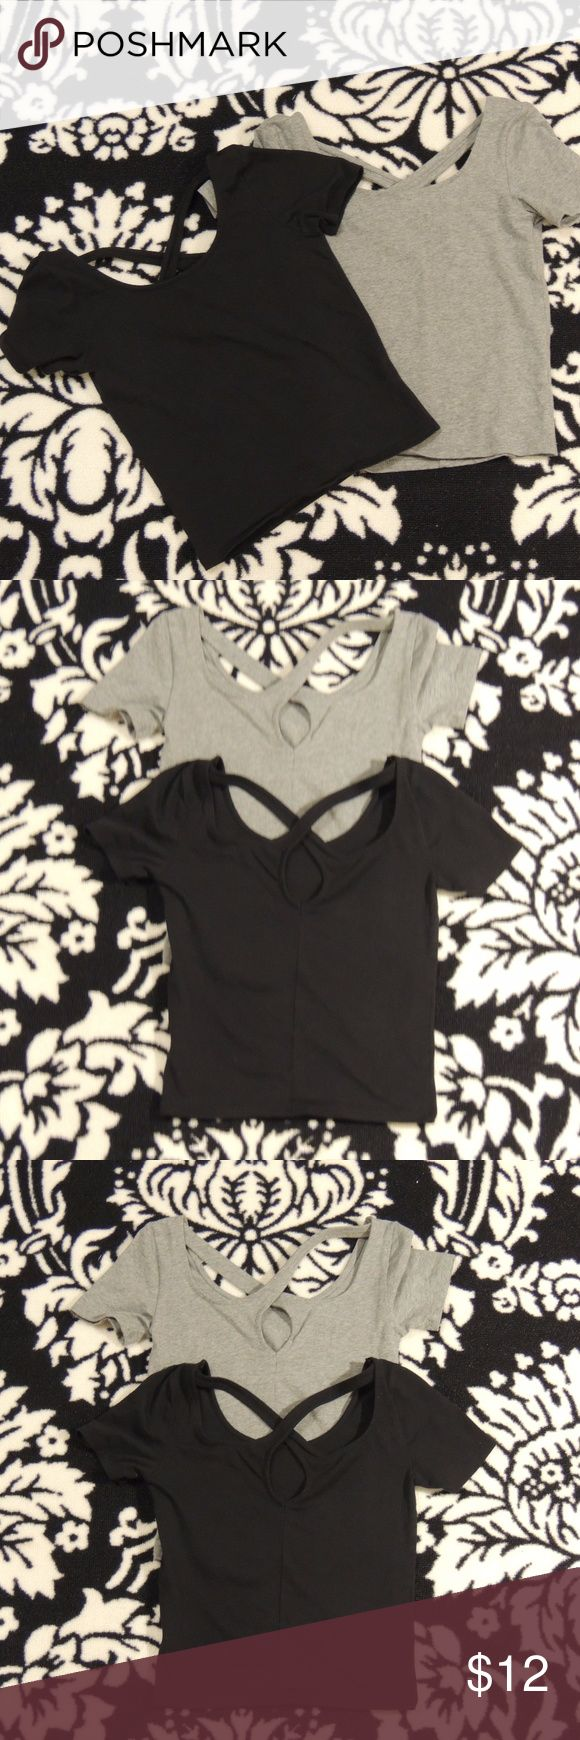 Aeropostale (pair) of crop tops EUC set of two cotton crop tops. Black is a size S; Grey is a size XS they grey one is NWOT  ( I didn't notice that much of a difference when I bought them as far as size goes the both fit me about the same). Pairs great with a skater skirt or jeans. the back of the shirt has a crisscross back pattern smoke free home Aeropostale Tops Crop Tops